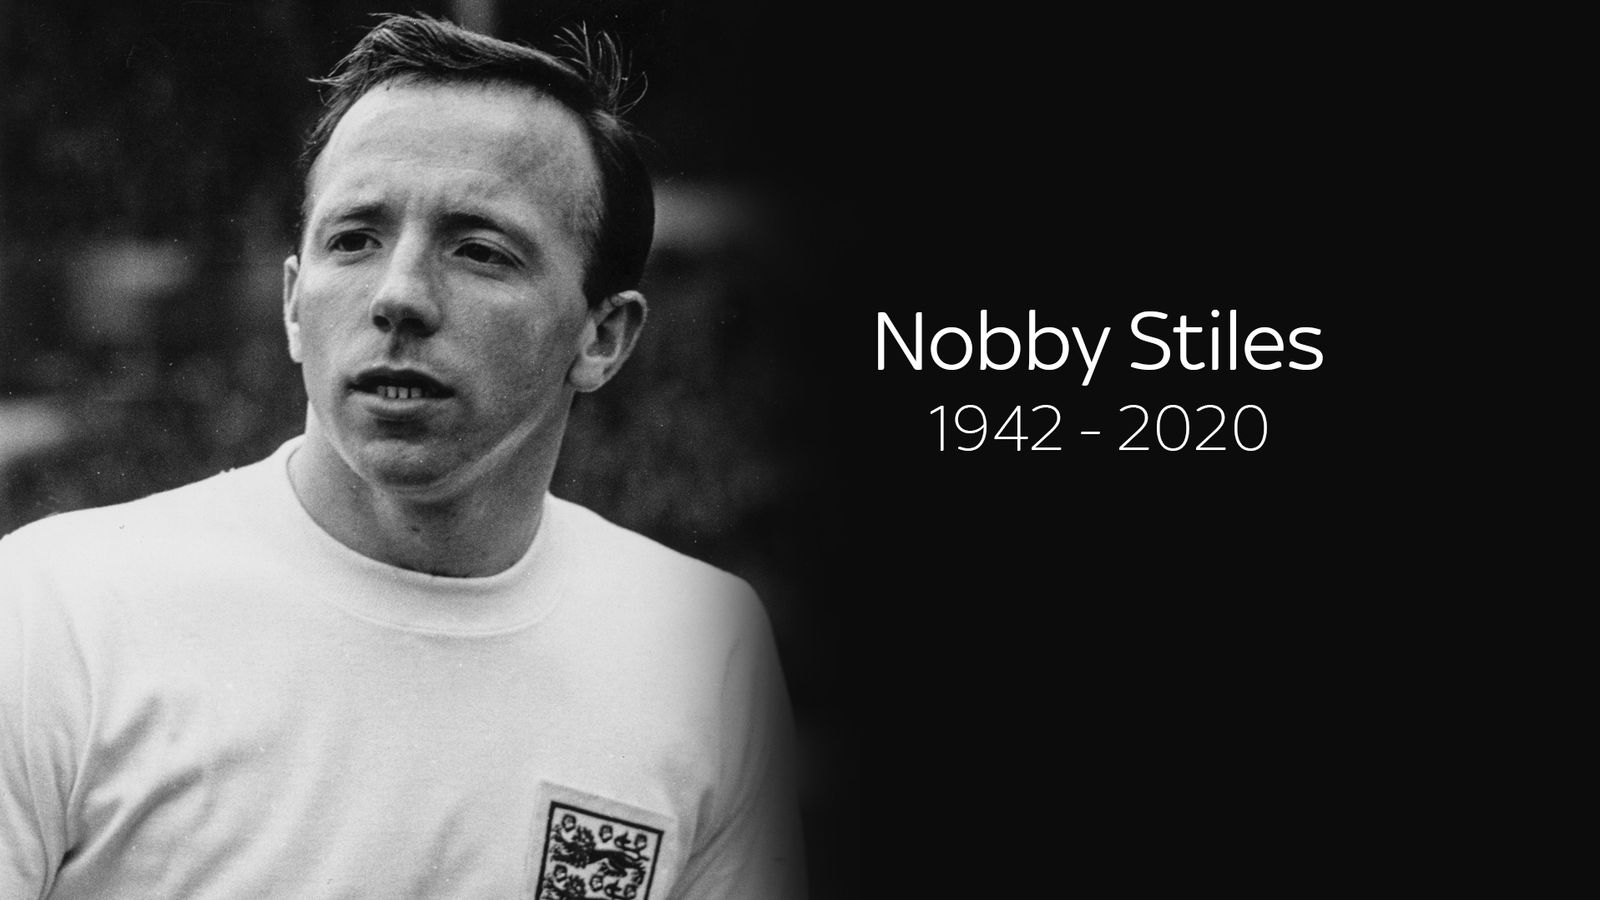 nobby-stiles-england-world-cupwinner-dies-aged-78-after-long-illness